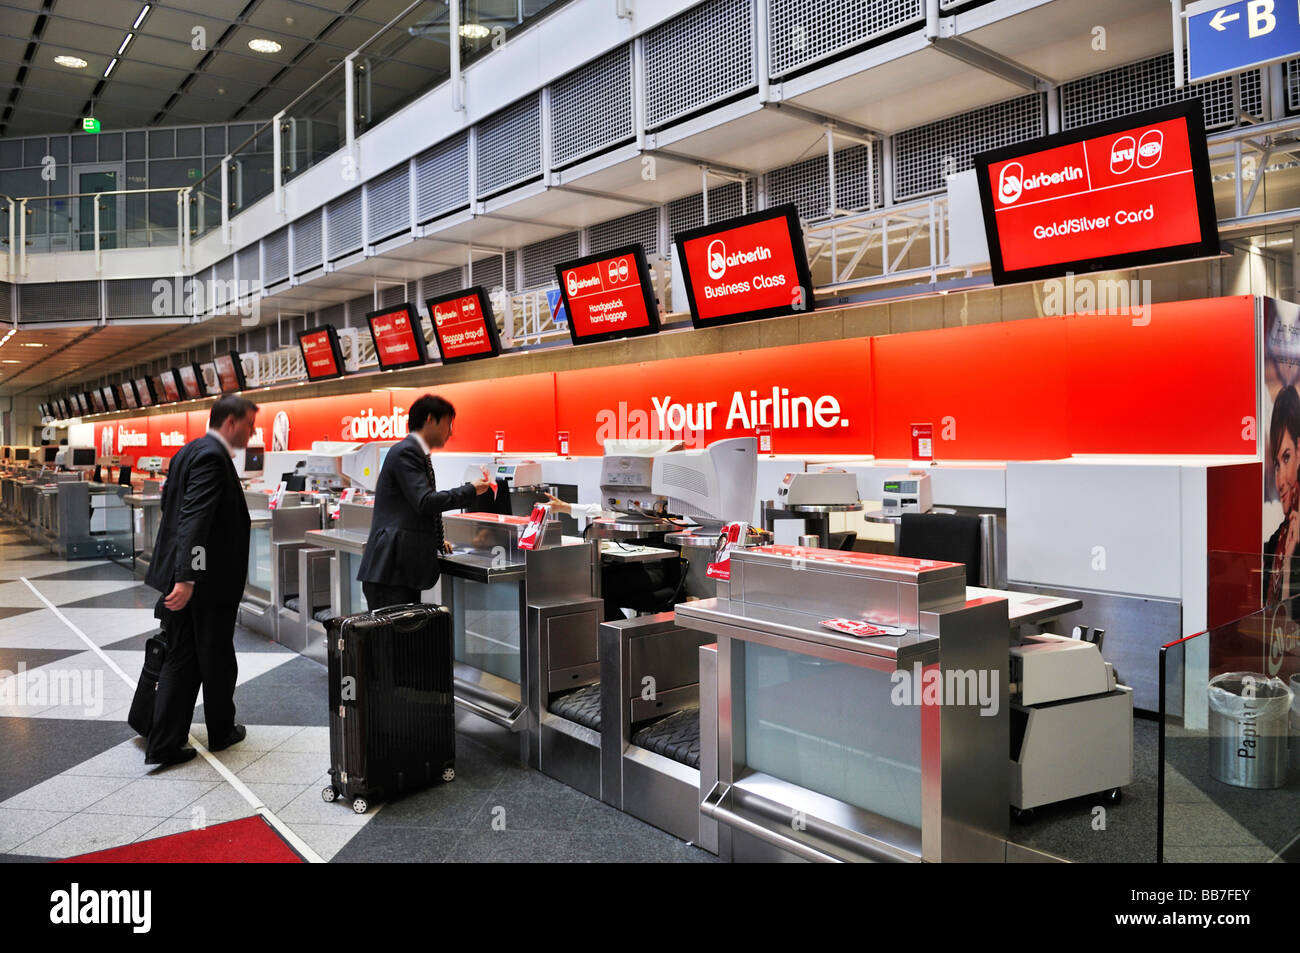 Check-in counter, Airberlin, departure hall, Terminal 1, Airport MUC 2, Munich, Bavaria, Germany, Europe - Stock Image